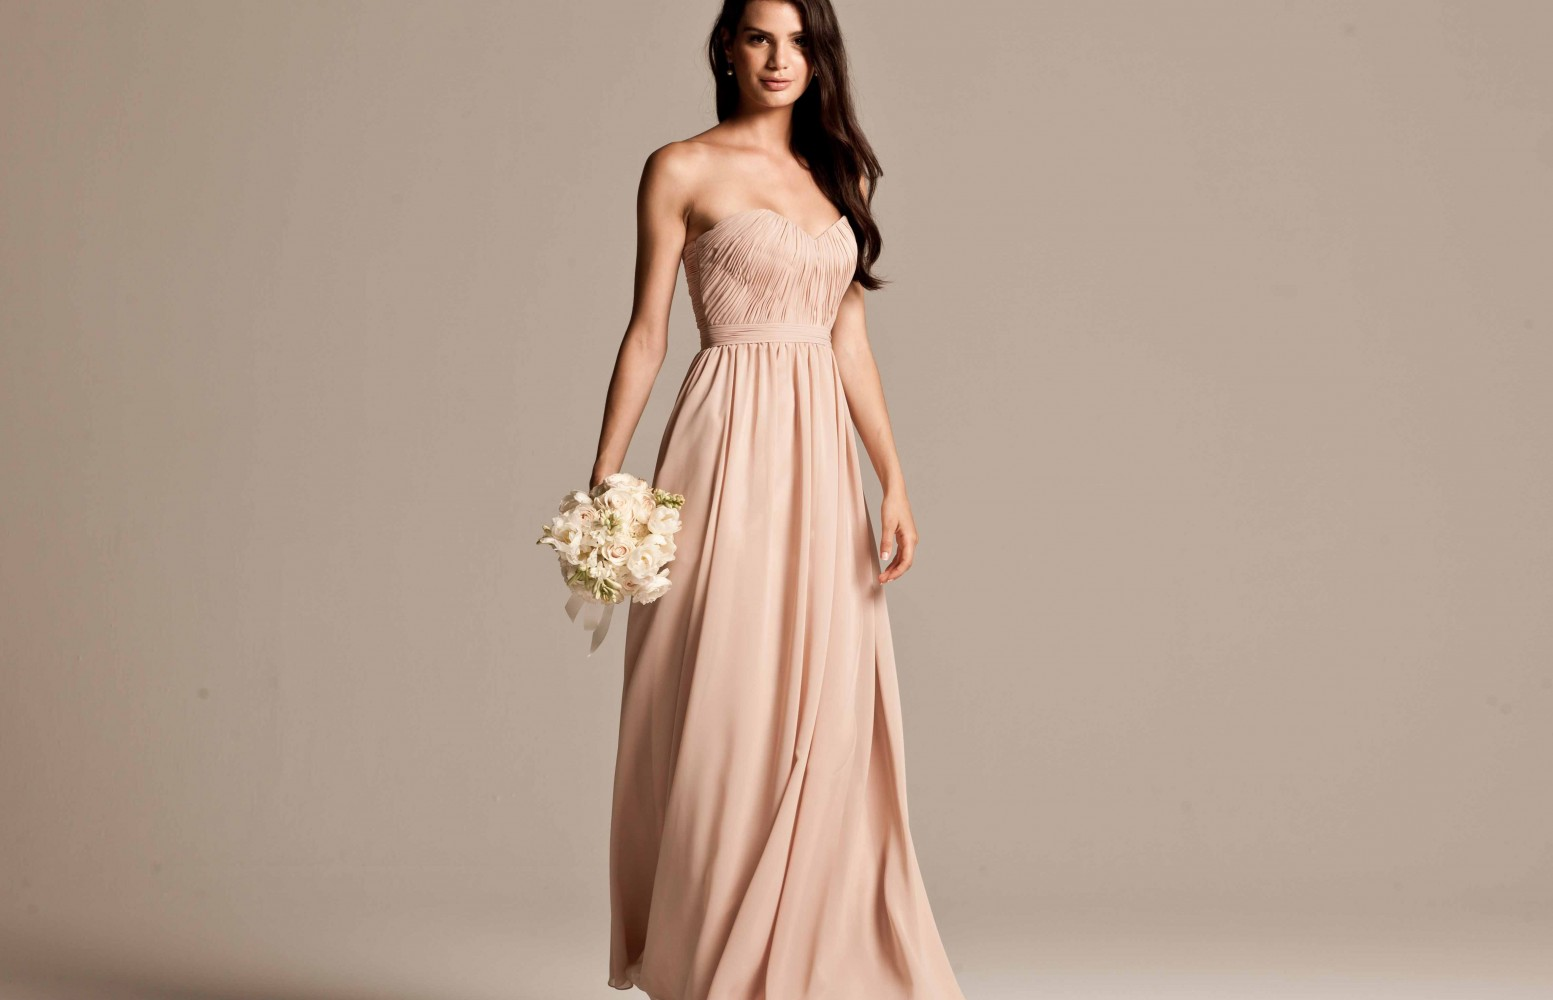 Beige bridesmaid dresses natasha millani beige strapless bridesmaid dresses online in australia ombrellifo Gallery